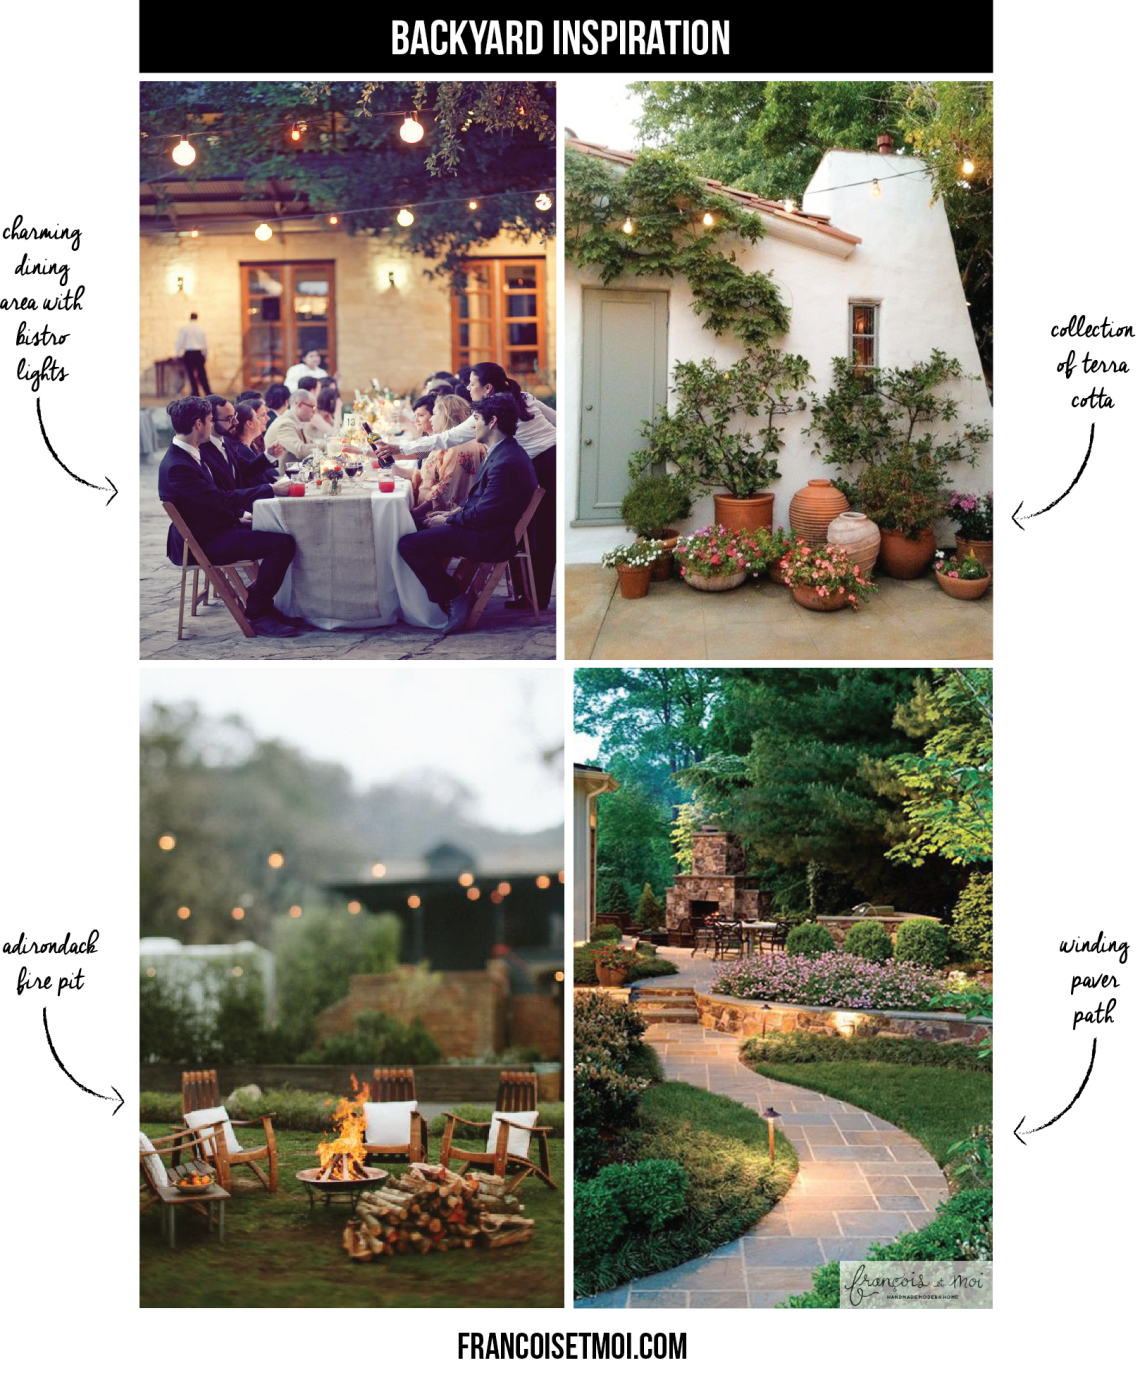 Looking for some backyard design inspiration? Come see what we're cooking up for ours!